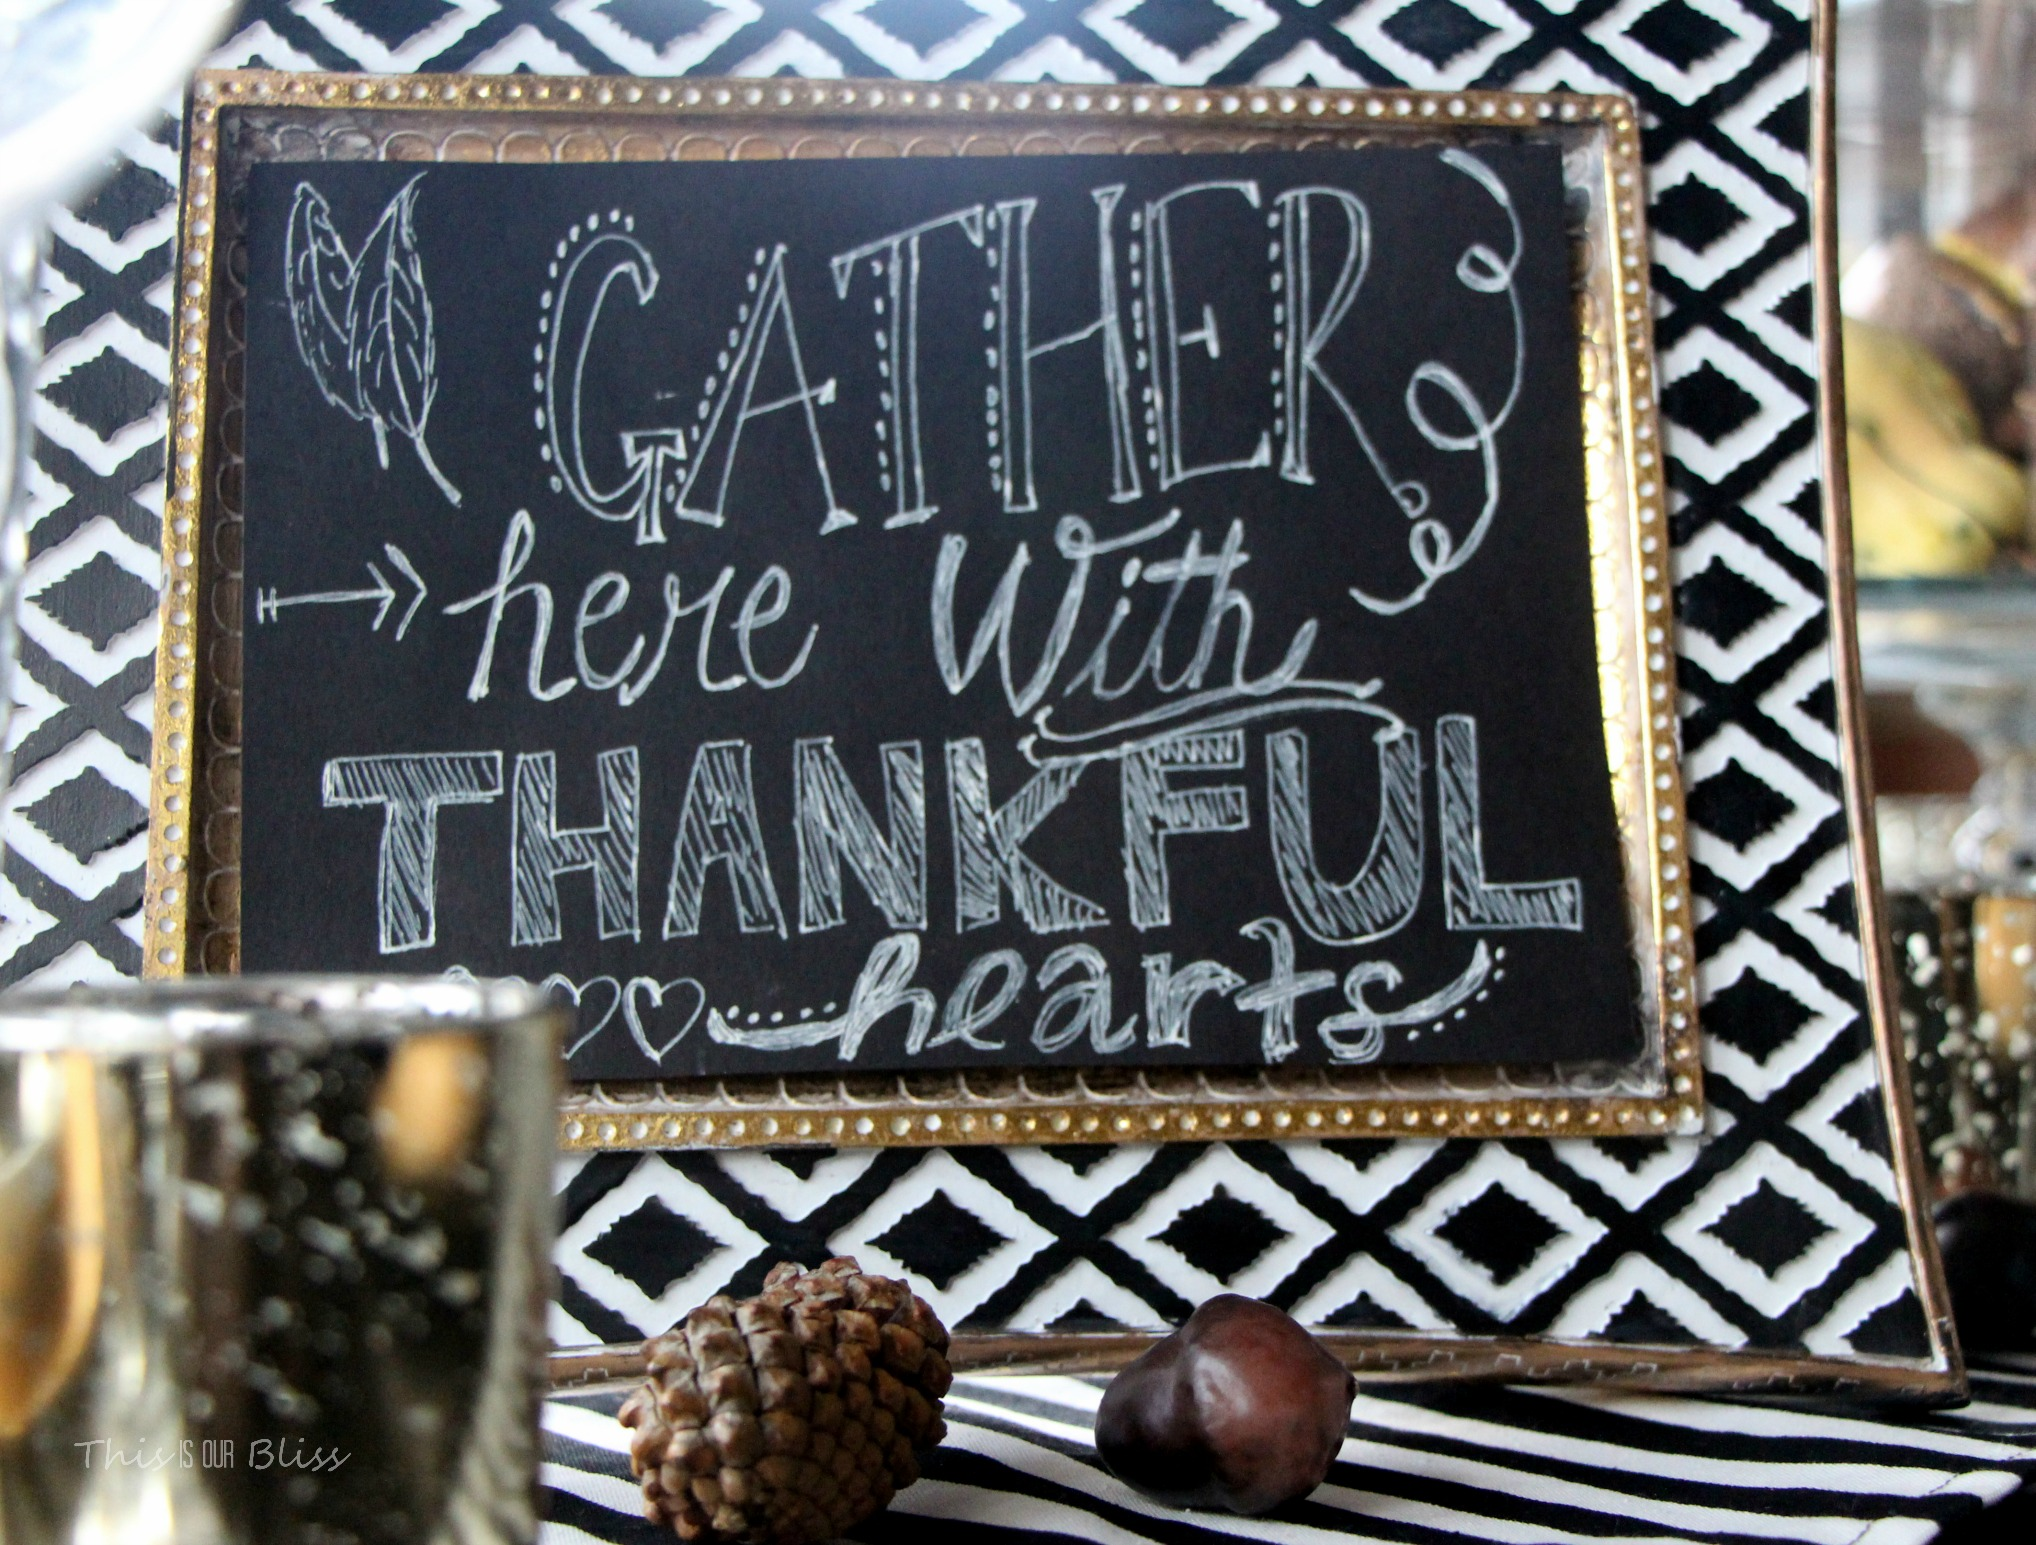 Diy Faux Chalkboard Art Gather Here With Thankful Hearts Thanksgiving Tablescape Fall Decor This Is Our Bliss